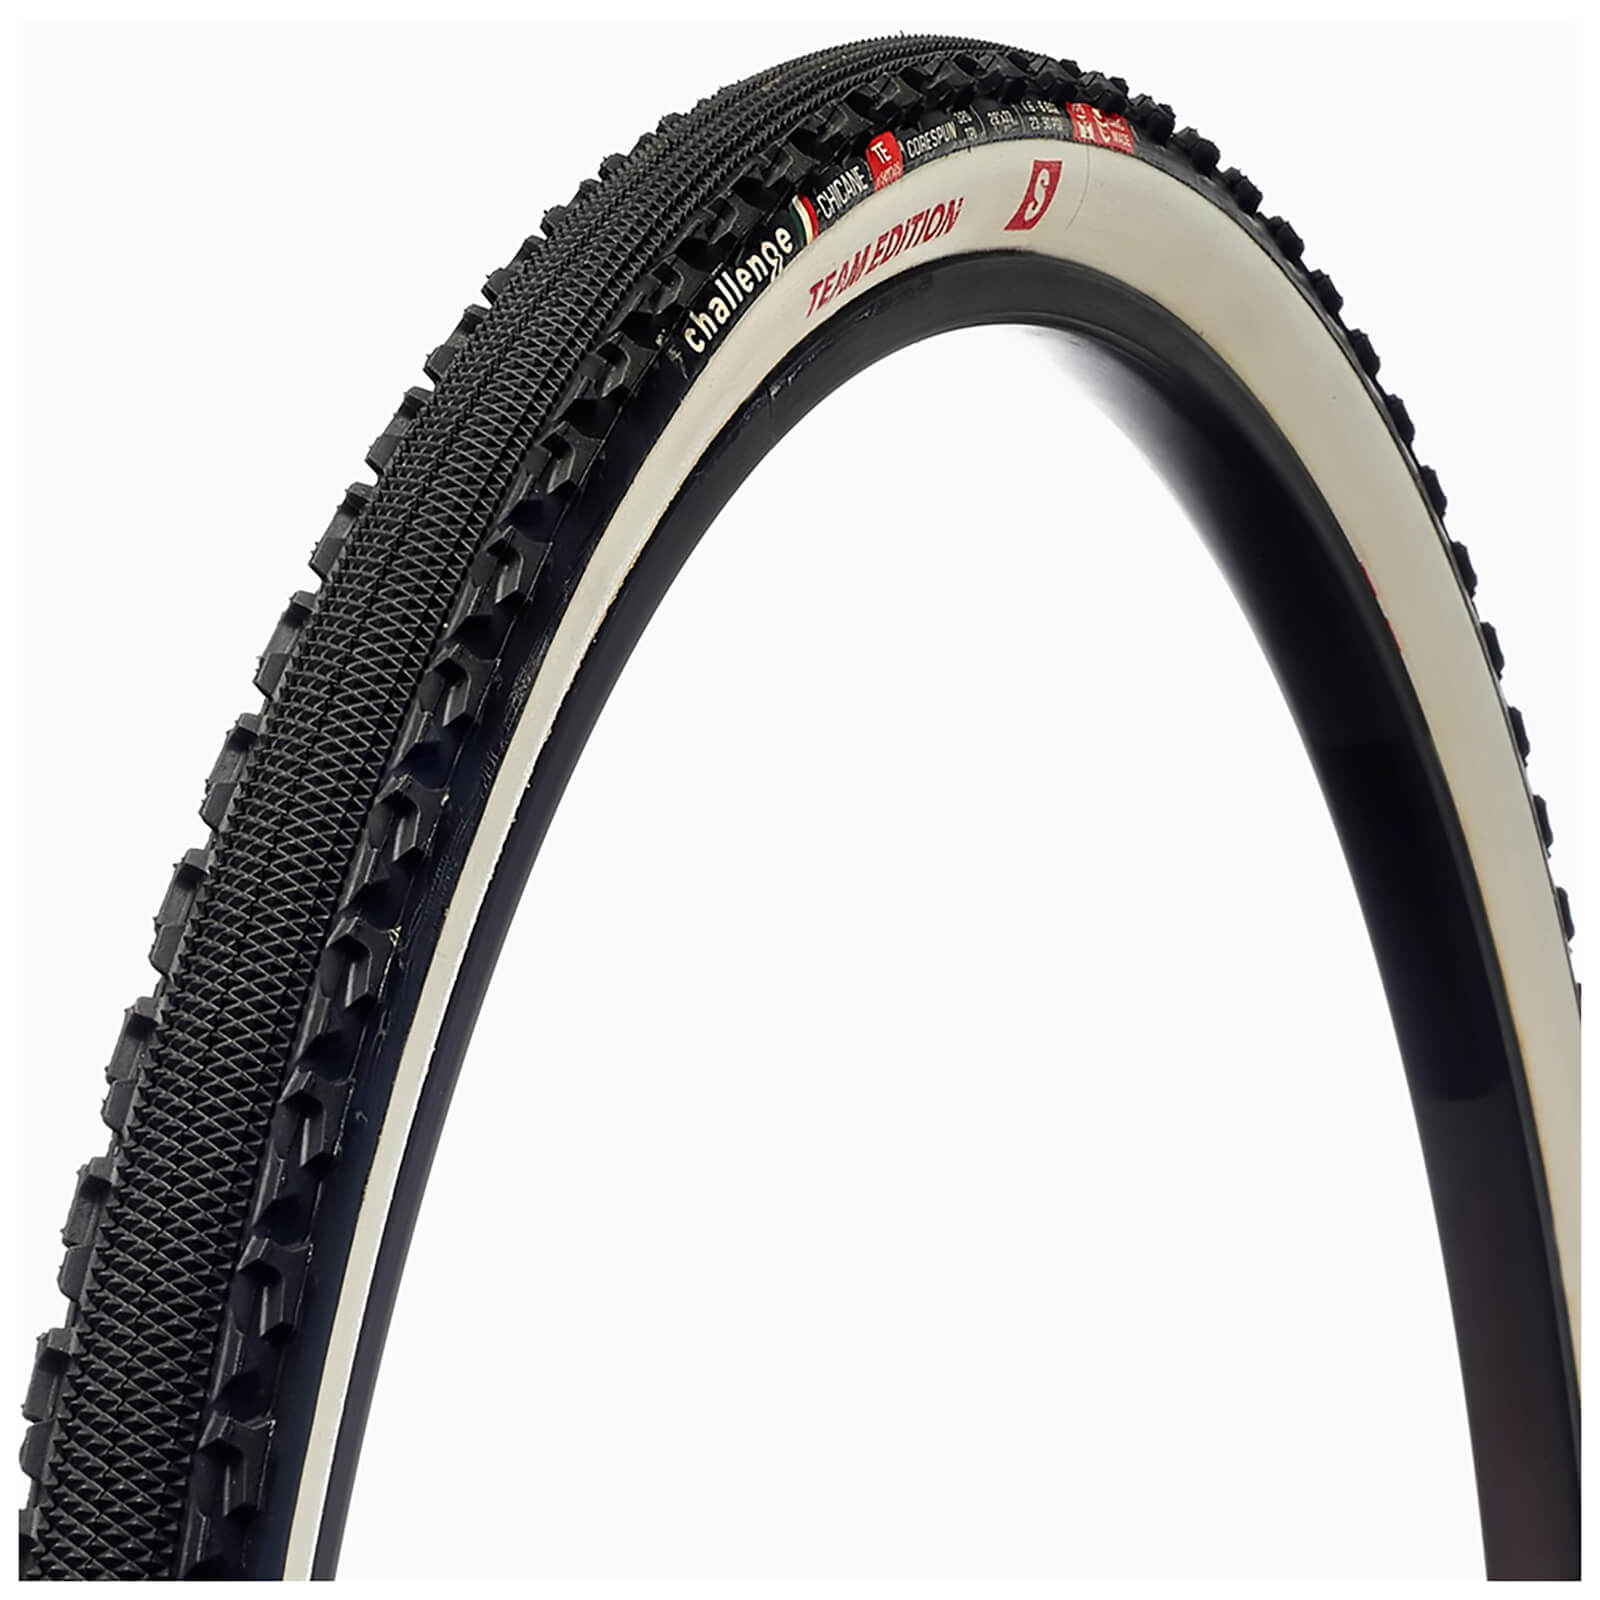 Challenge Chicane TE S 320 TPI Tubular Cyclocross Tyres - 700c x 33mm | Dæk